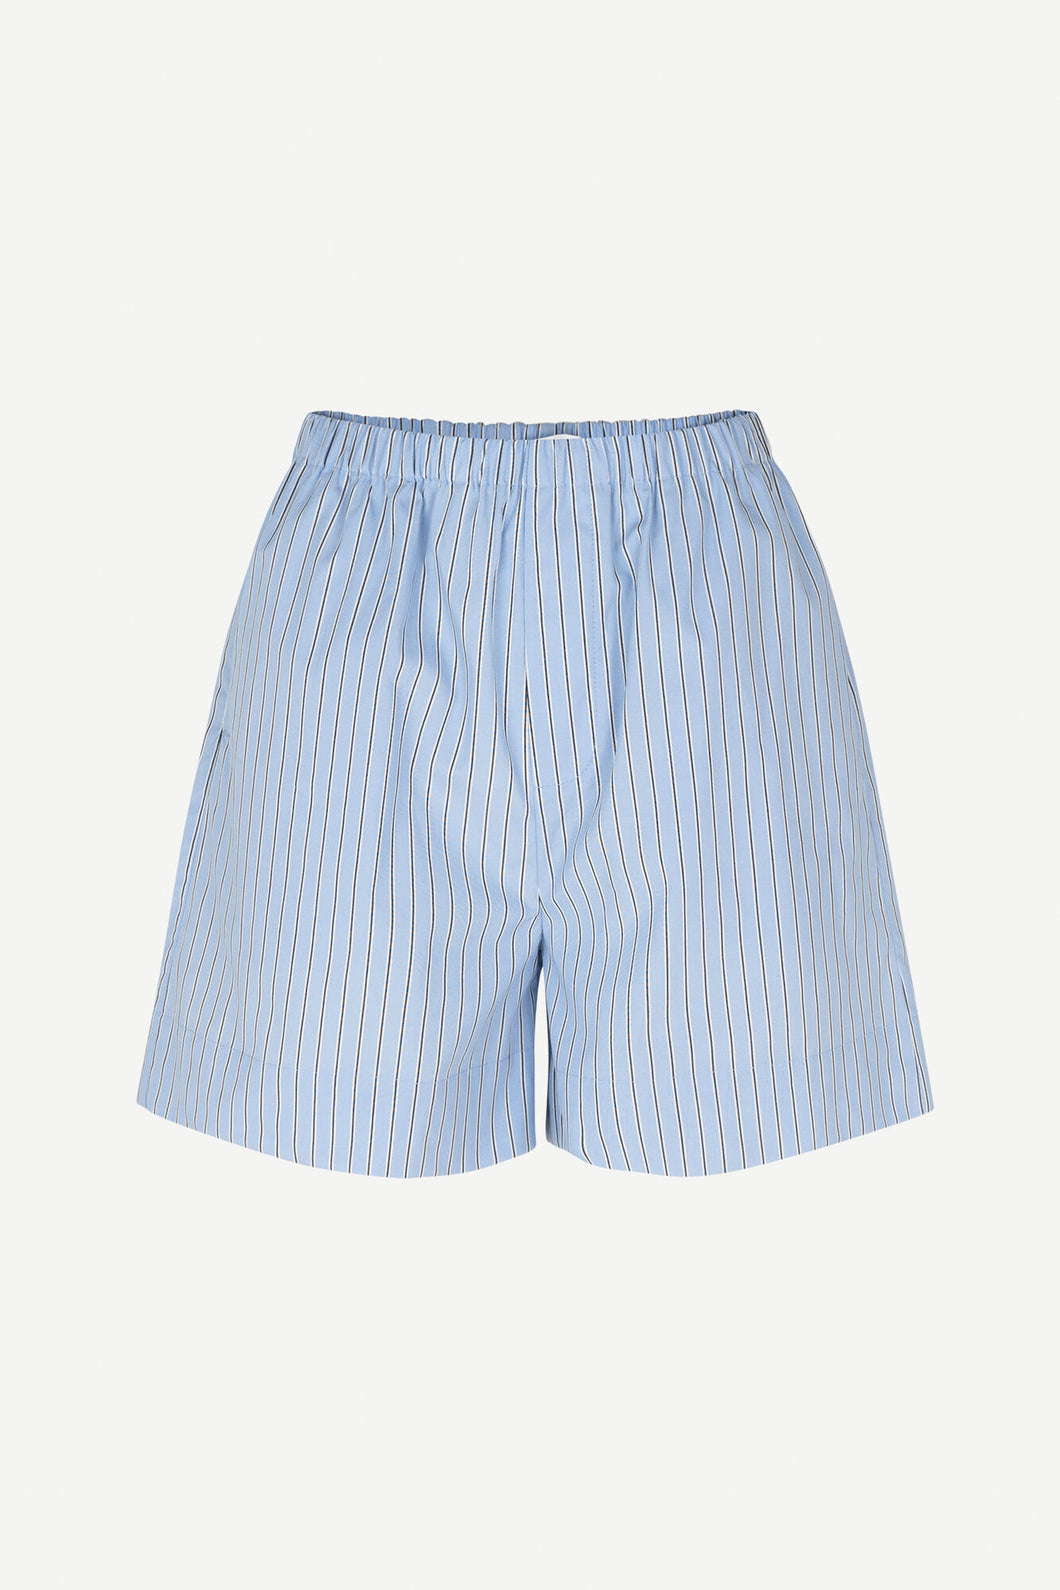 Laury shorts 11466 blue stripes